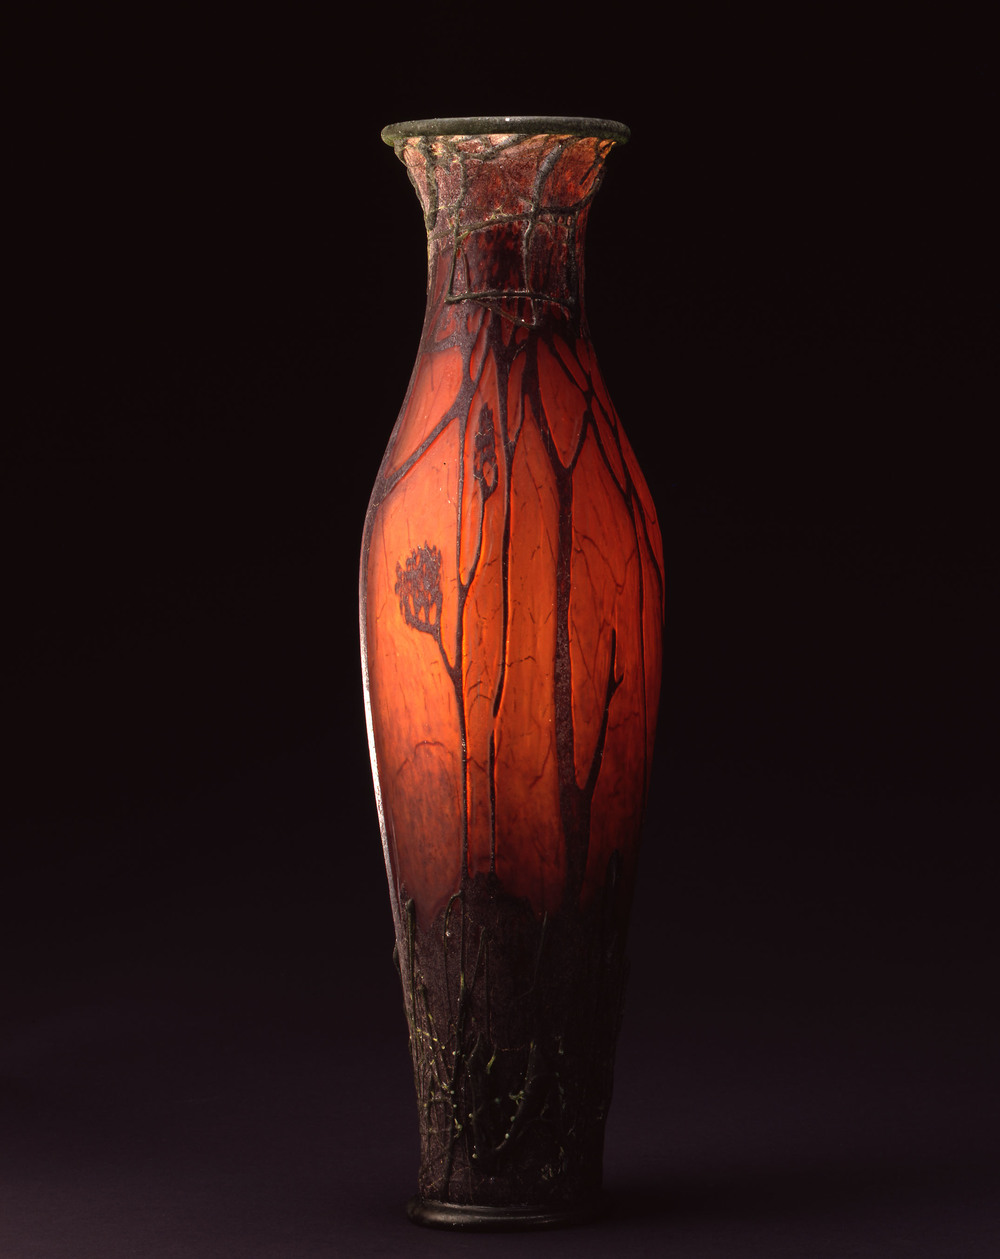 William Morris,  Vase with Grass and Trees    (2004, glass, 16 x 11 x 10 3/8 inches), WM.35